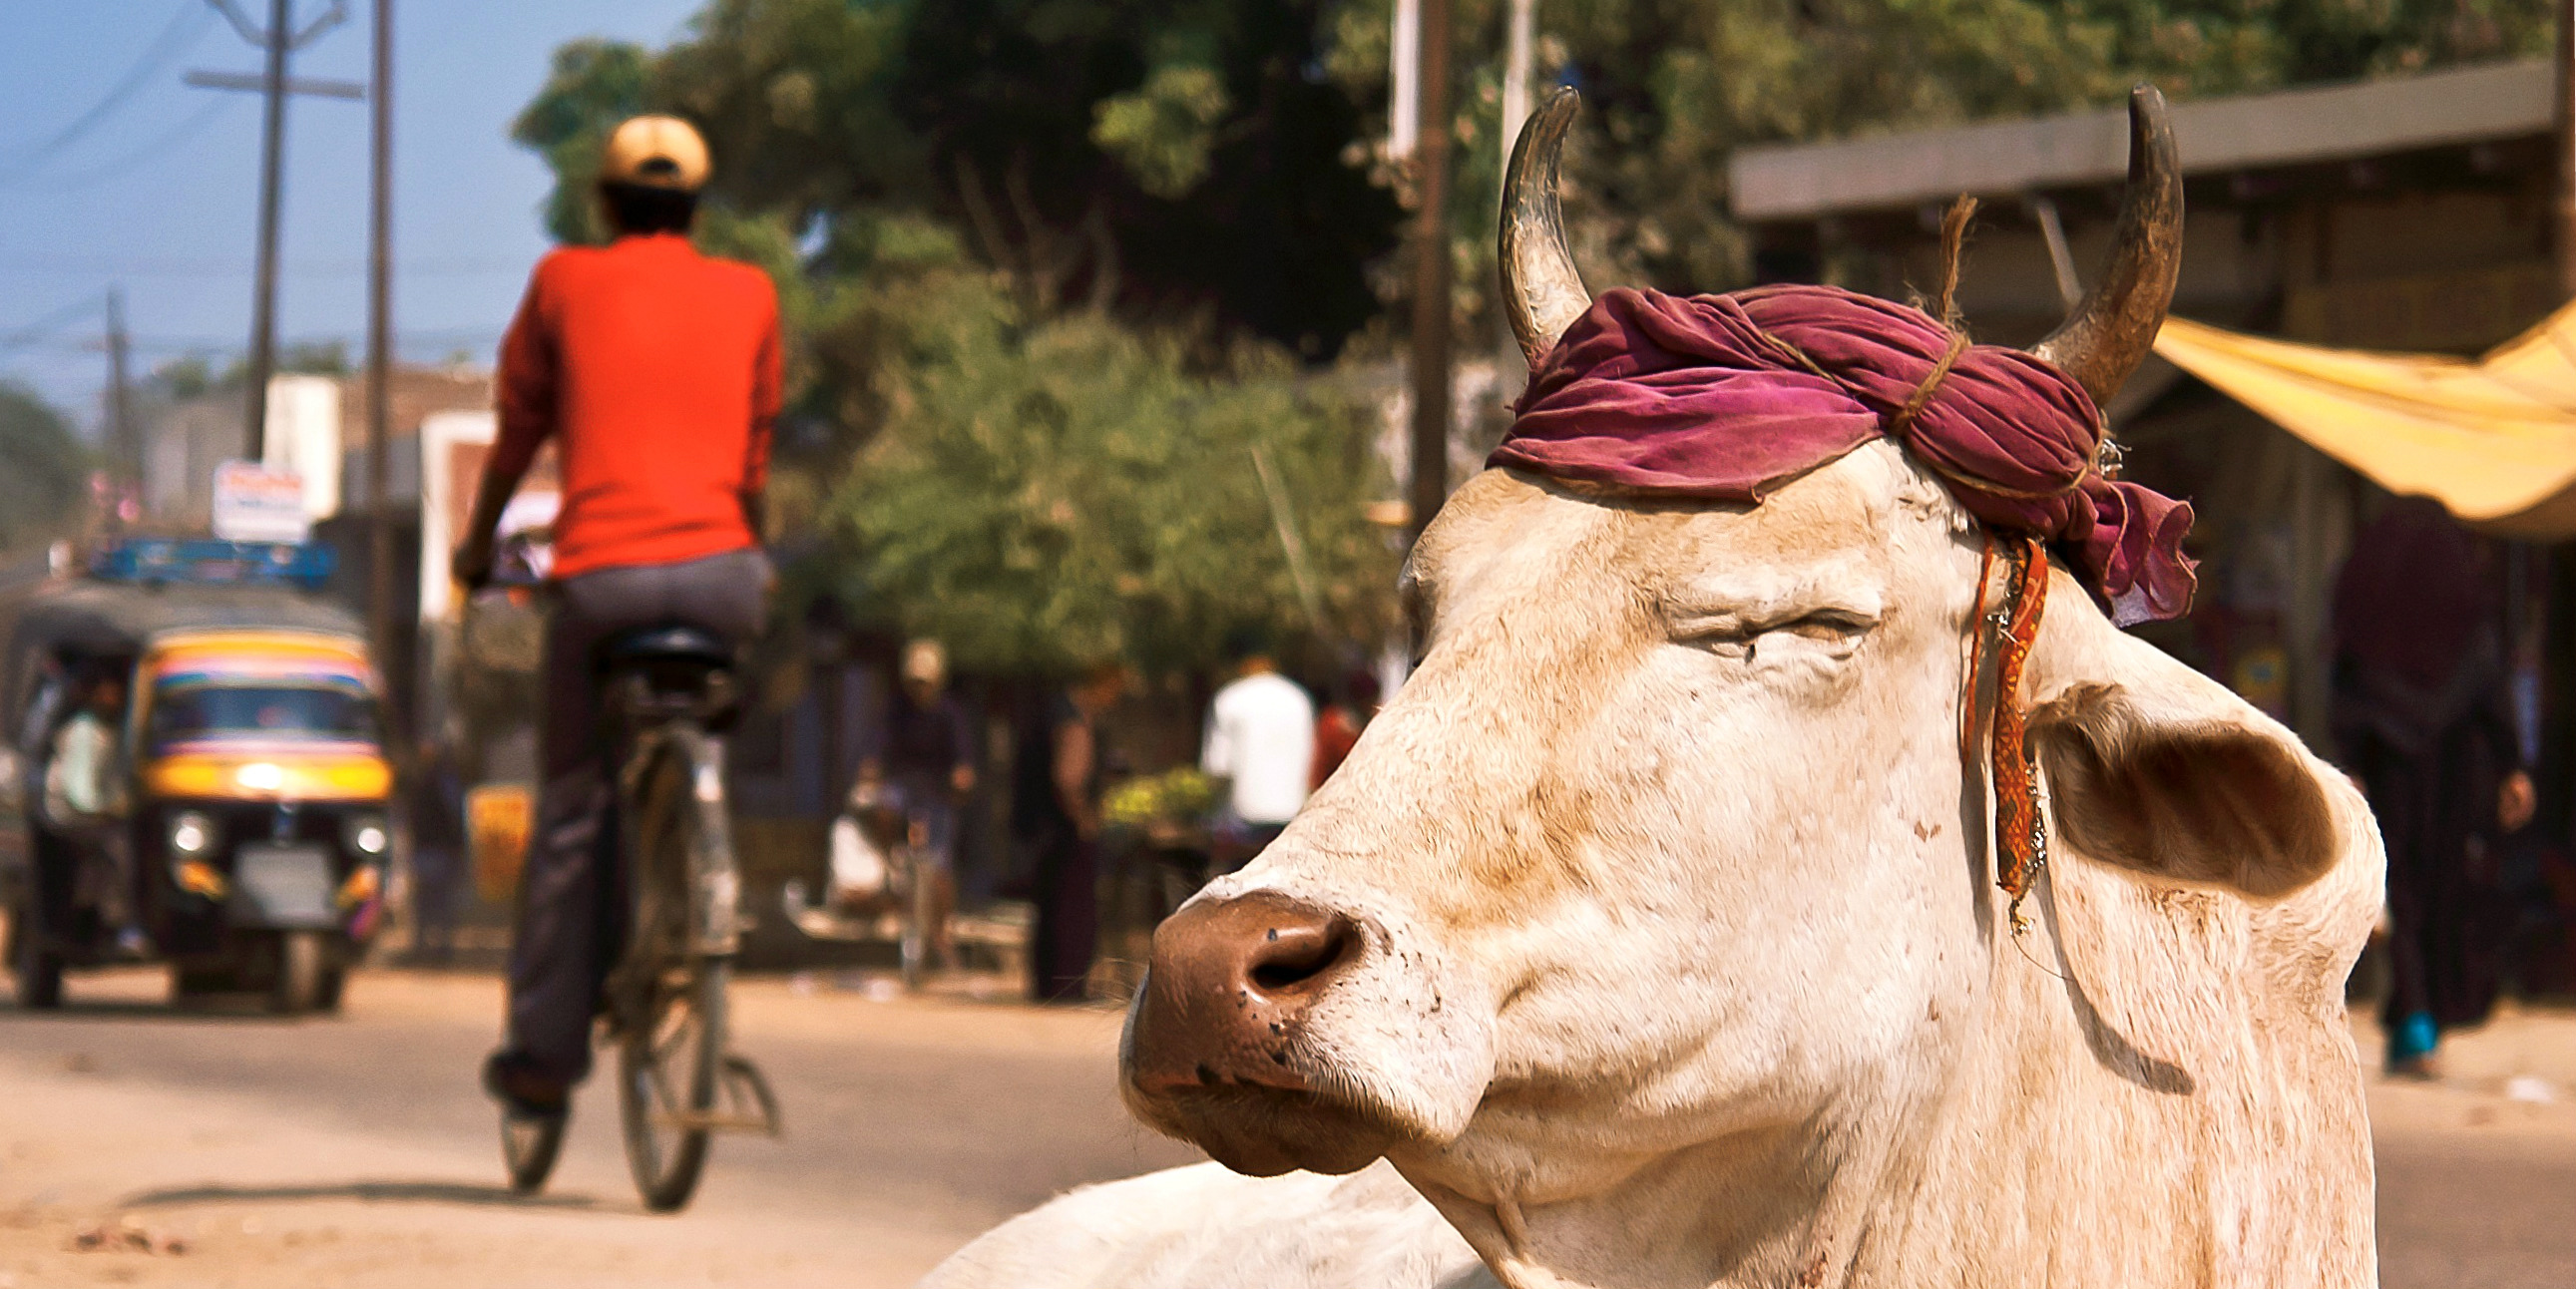 Travel in India and you might come across cows like this, roaming freely in the streets.